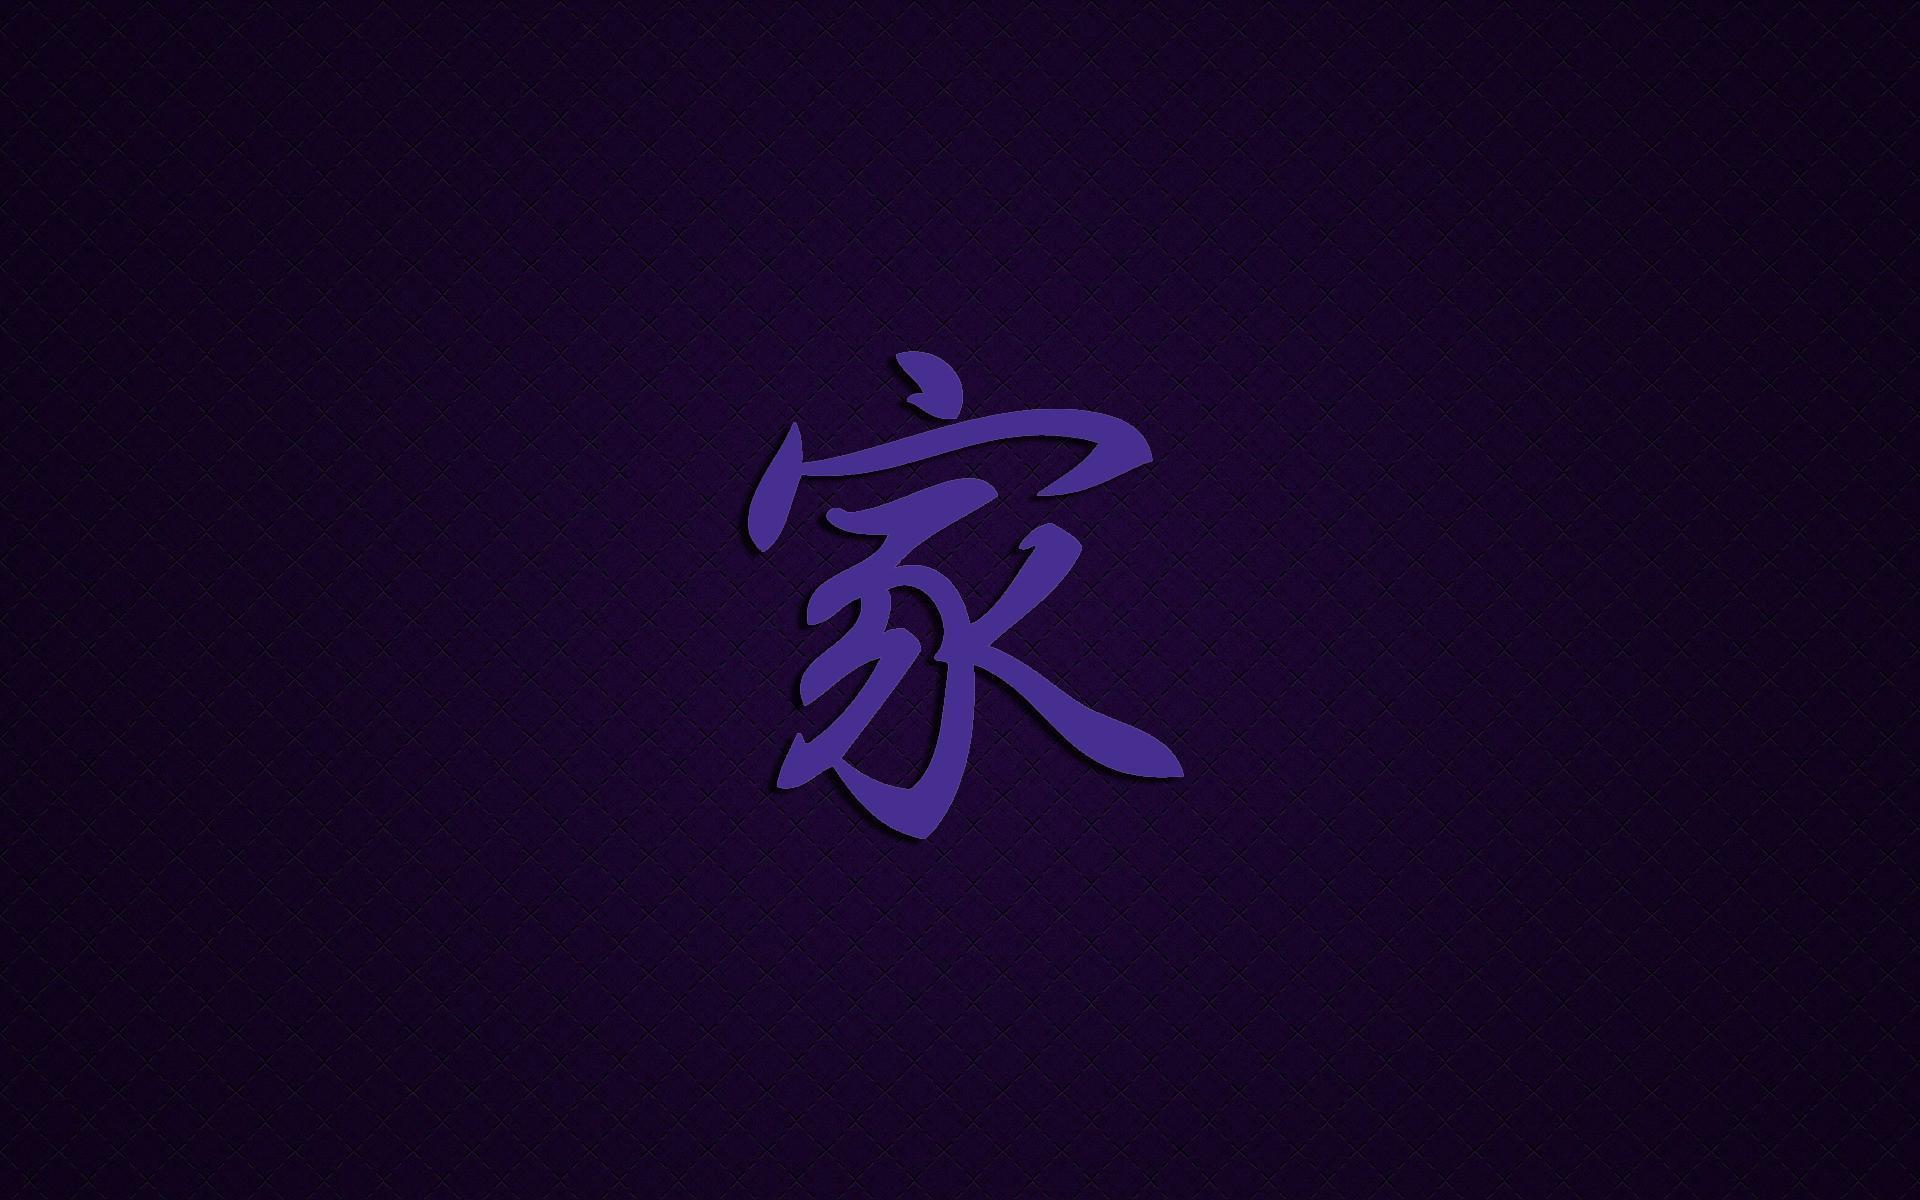 Love Symbol Wallpaper In Hd : chinese Symbols Wallpapers - Wallpaper cave